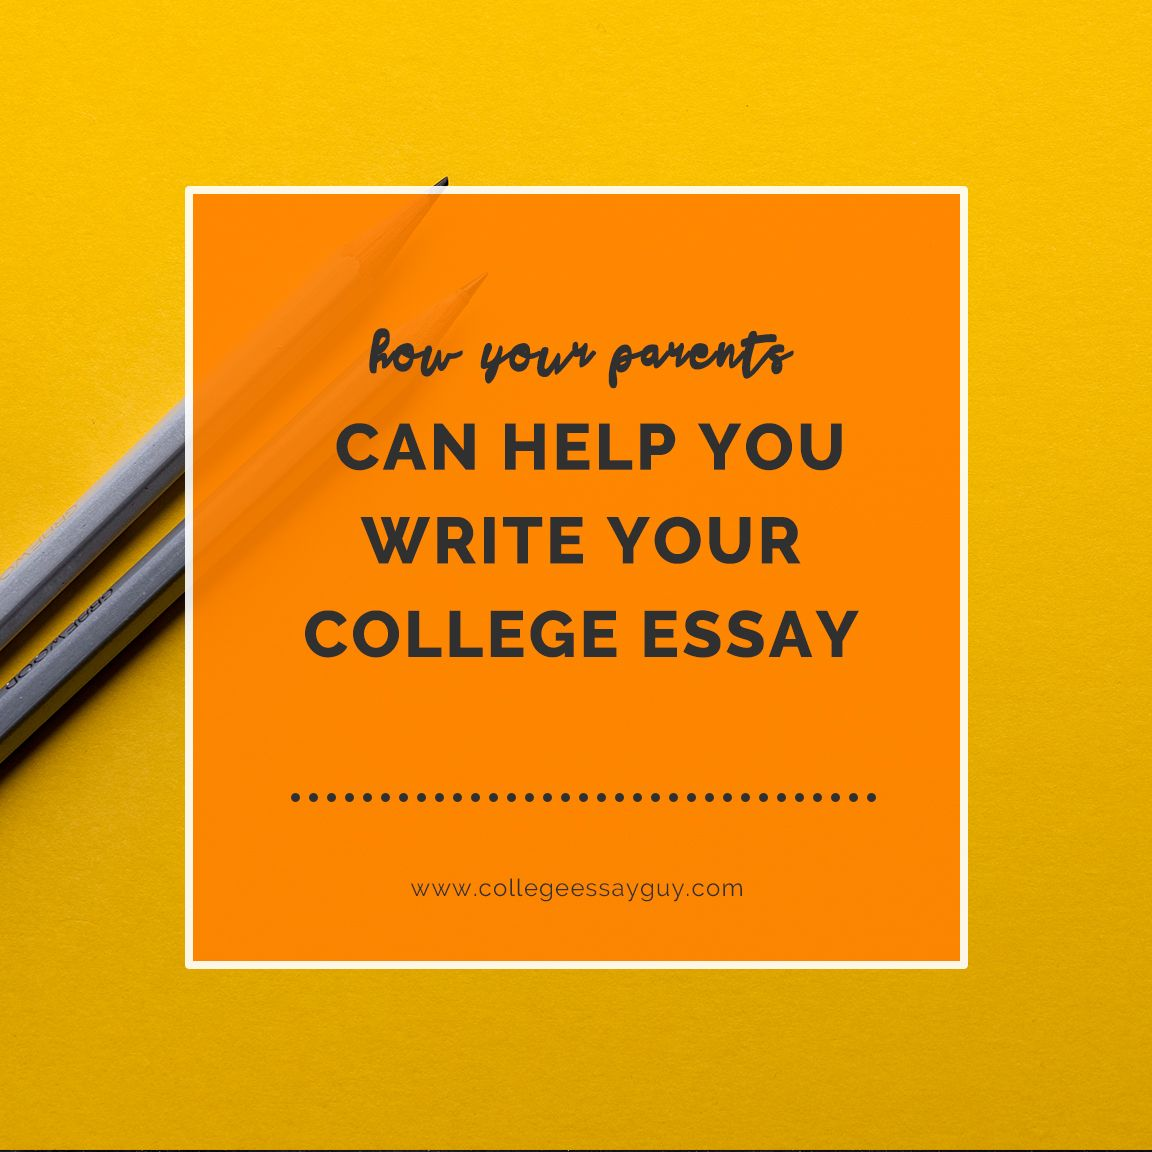 How Your Parents Can Help You Write Your College Essay